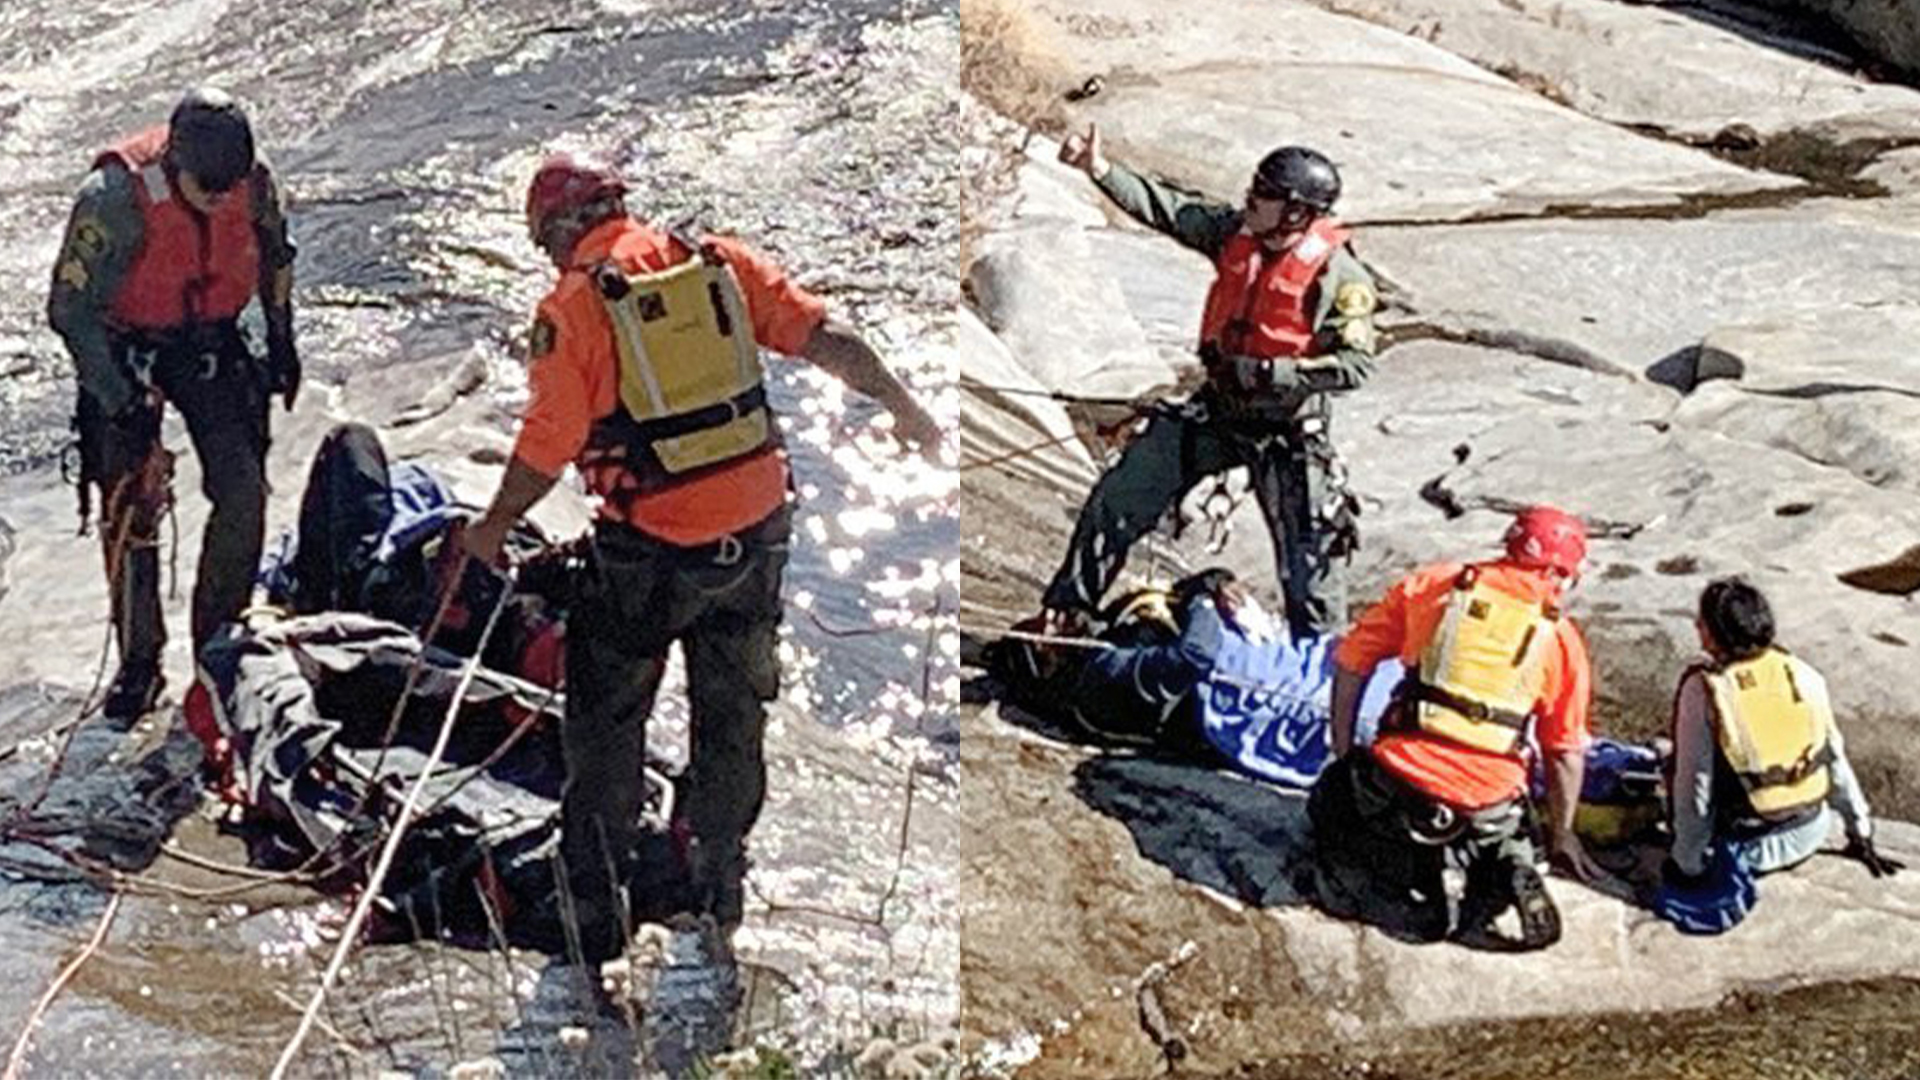 Husband and wife rescued from Willow Creek after she slips in, he jumps in after her